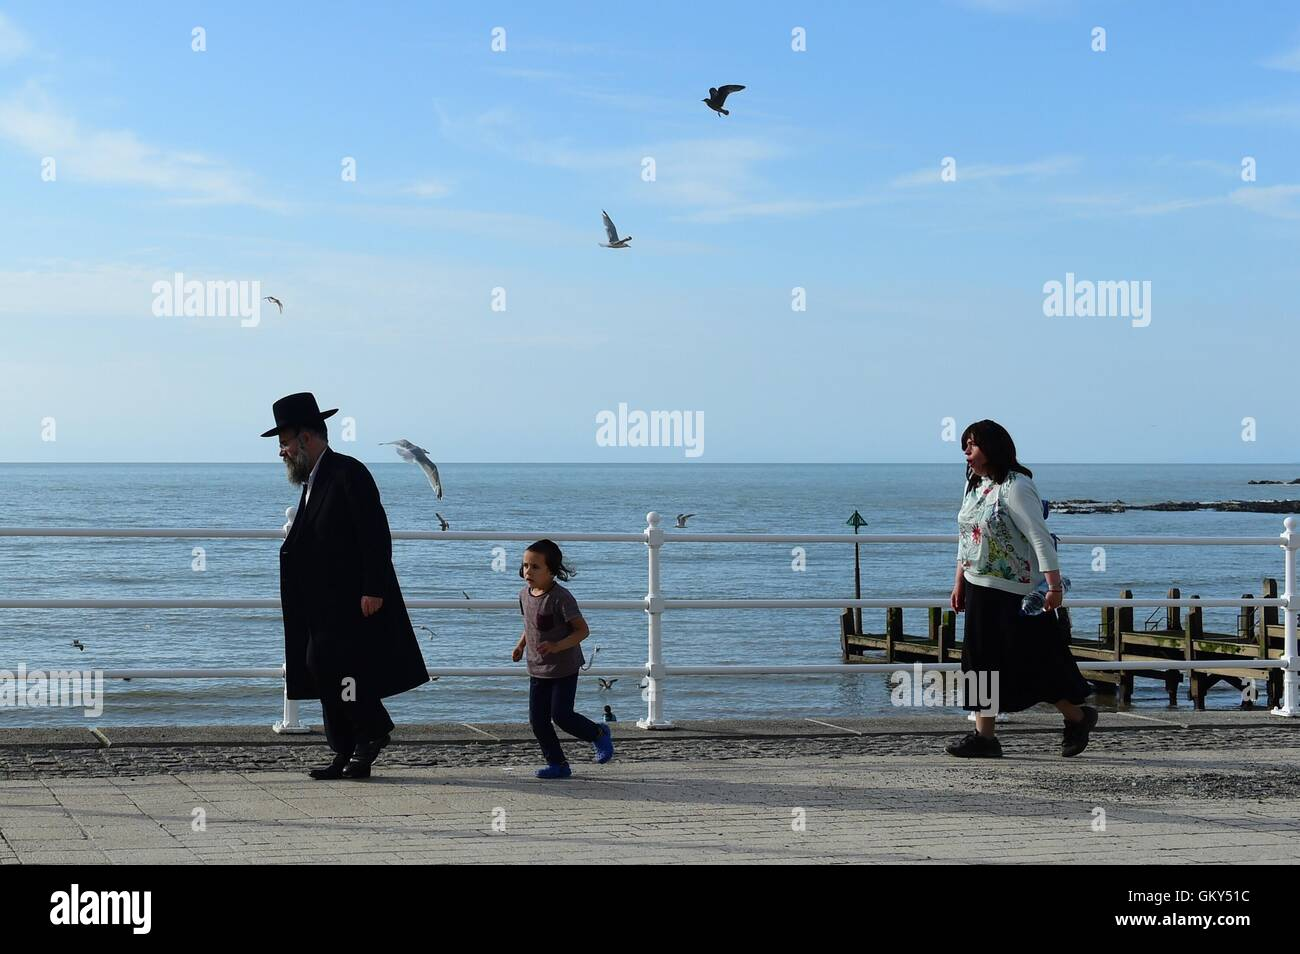 Aberystwyth Wales UK, Tuesday 23 August 2016 UK weather: An orthodox hassidic Jewish family on holiday at the seaside - Stock Image